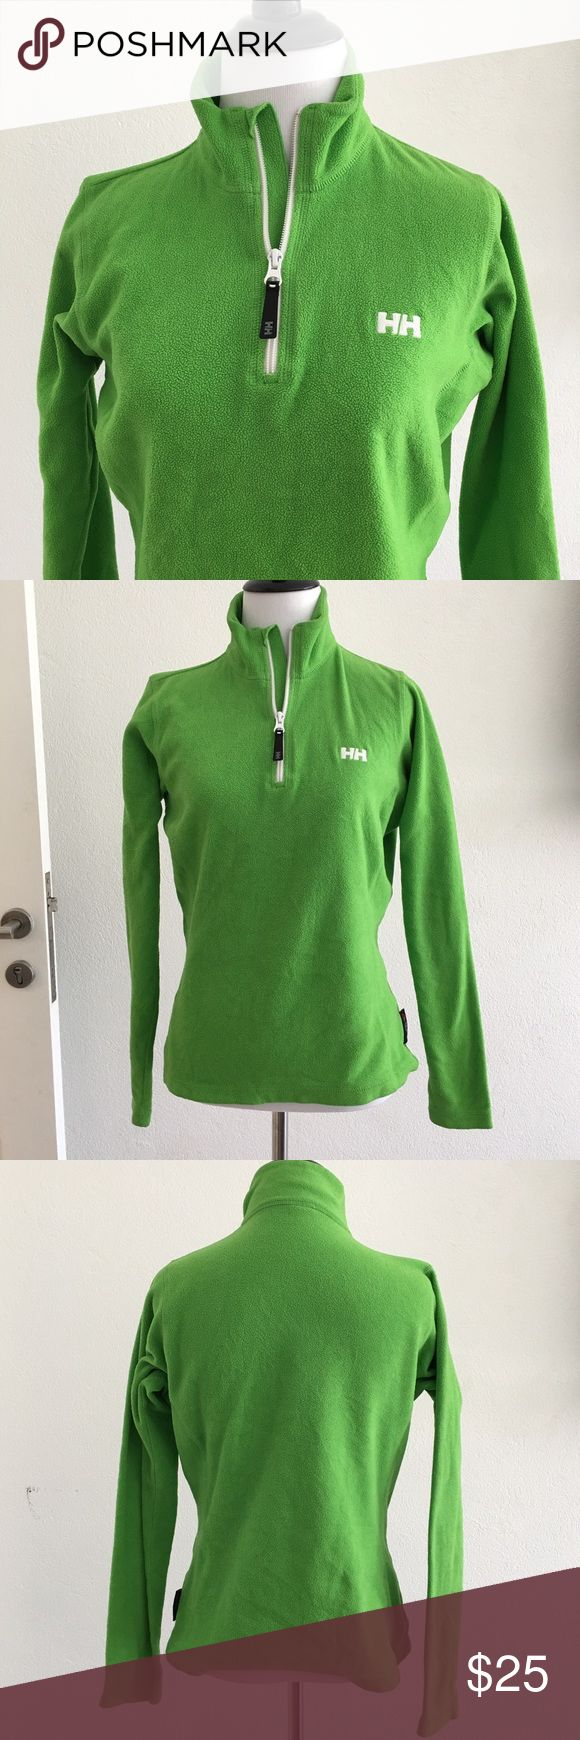 Helly Hansen Green Fleece half Zip Jacket size S Preowned Helly Hansen Green Fleece half Zip Jacket size S. Please look at pictures for better reference. Happy shopping!! T6 Helly Hansen Tops